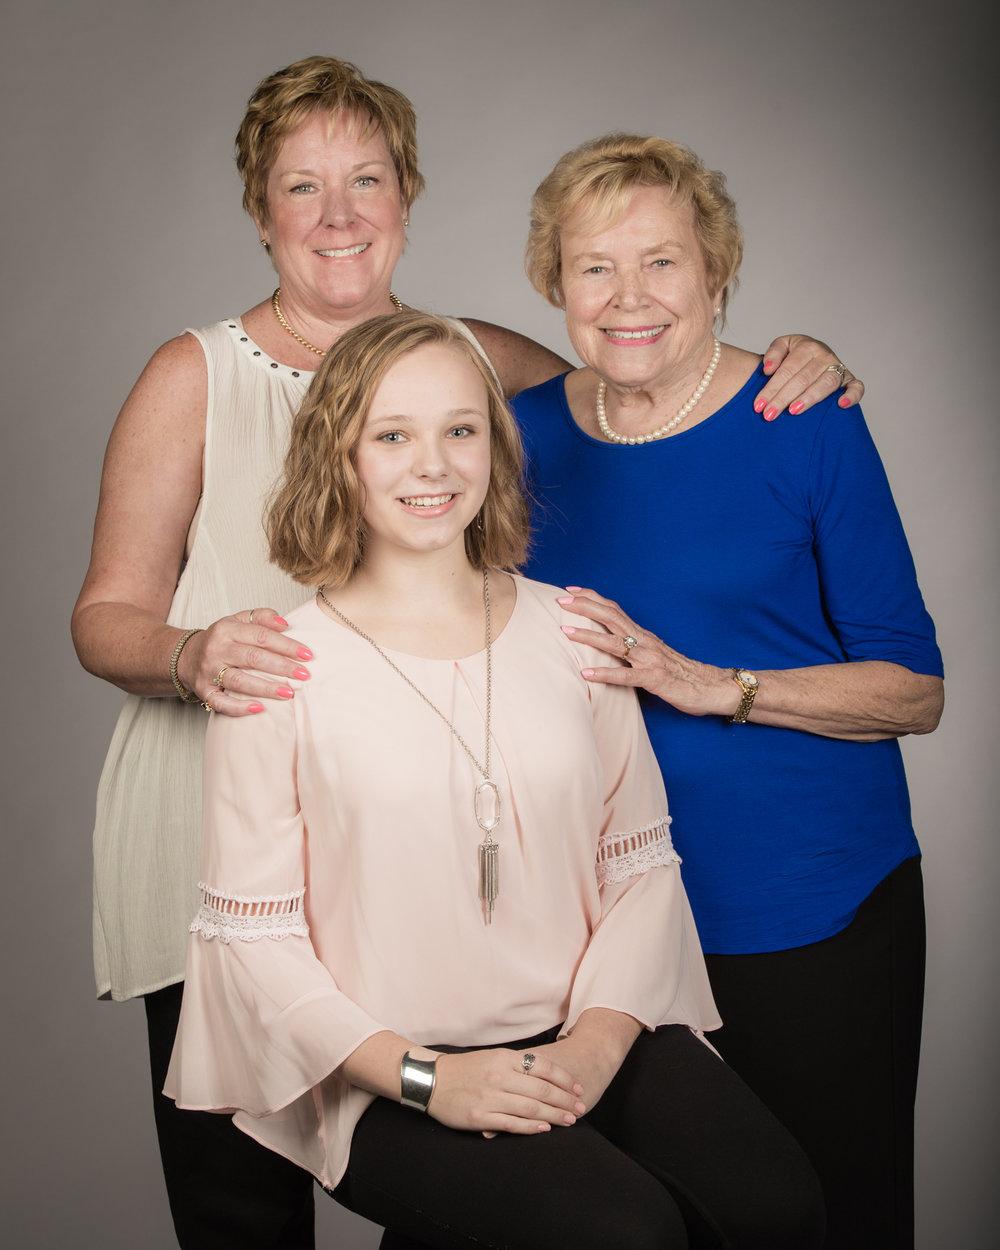 Generational photography is a beautiful way to commemorate Mother's Day.